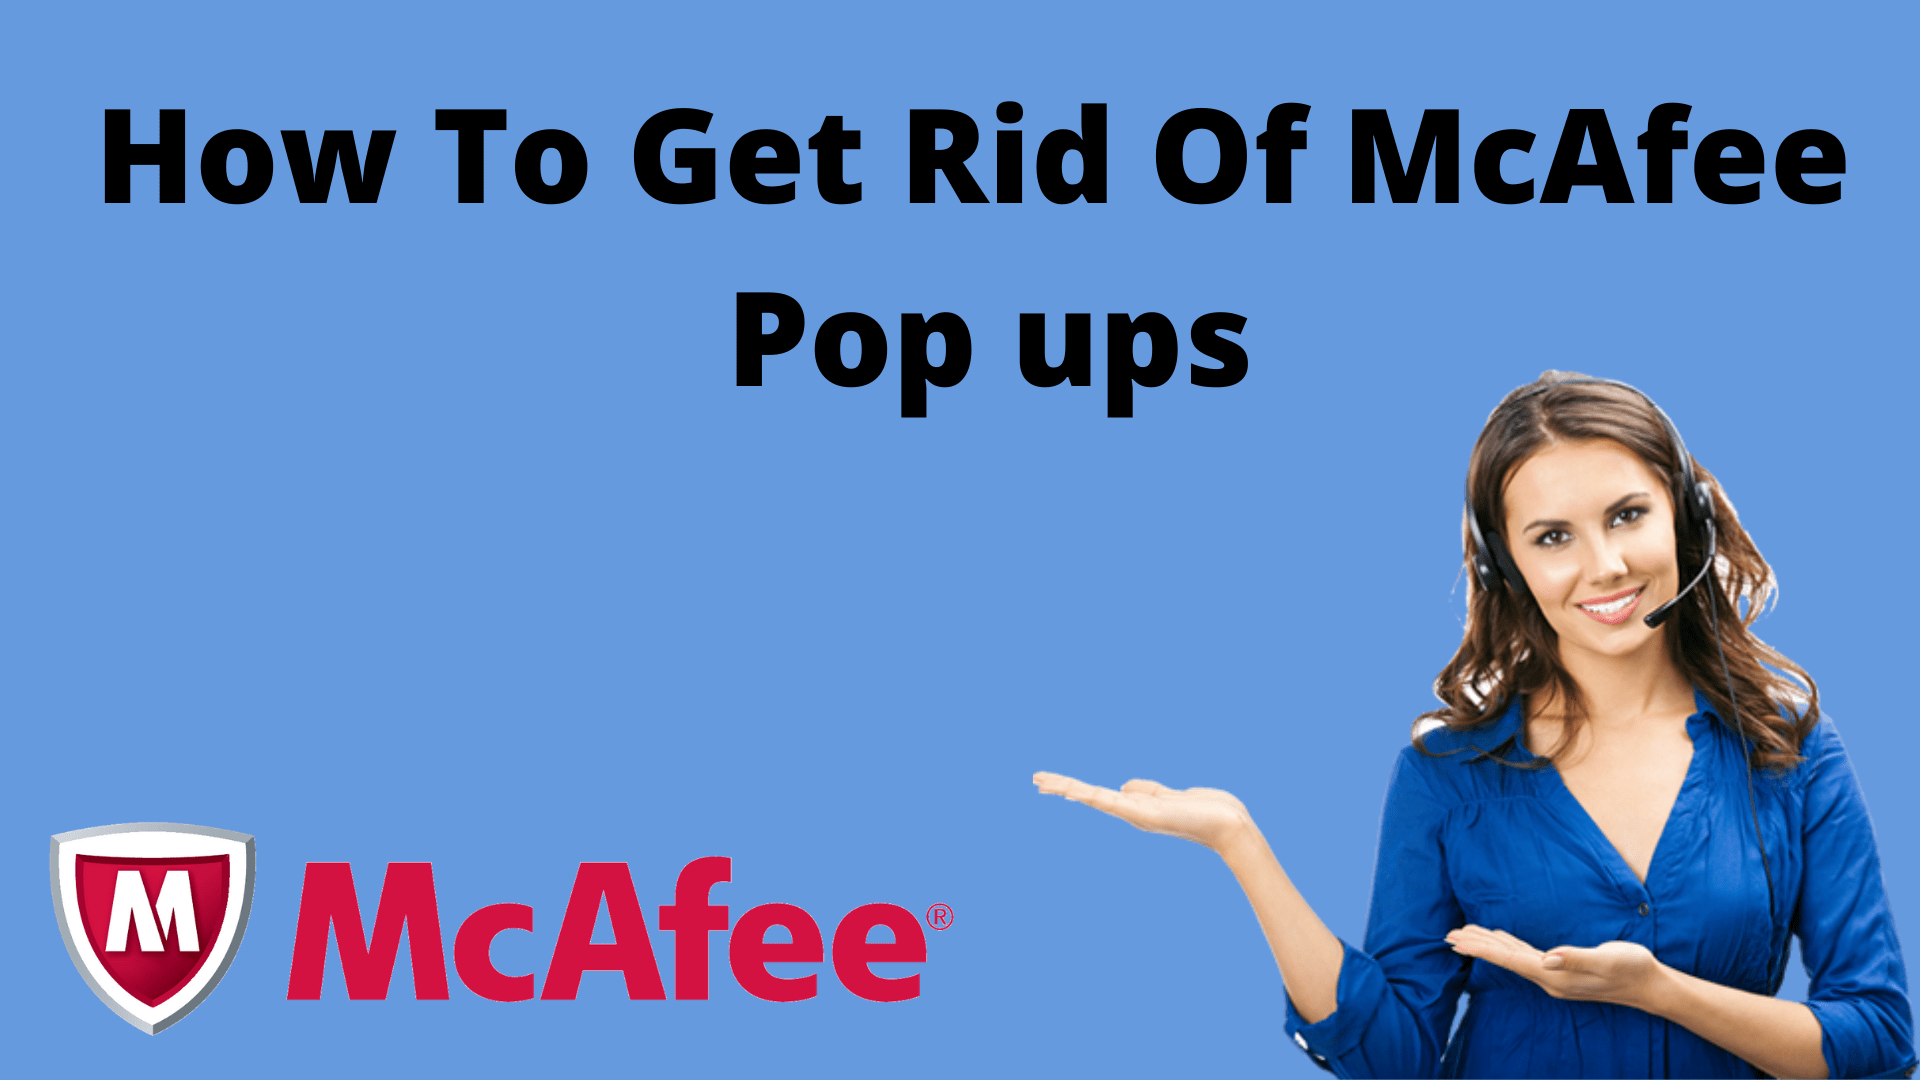 How to get rid of mcafee pop-up?